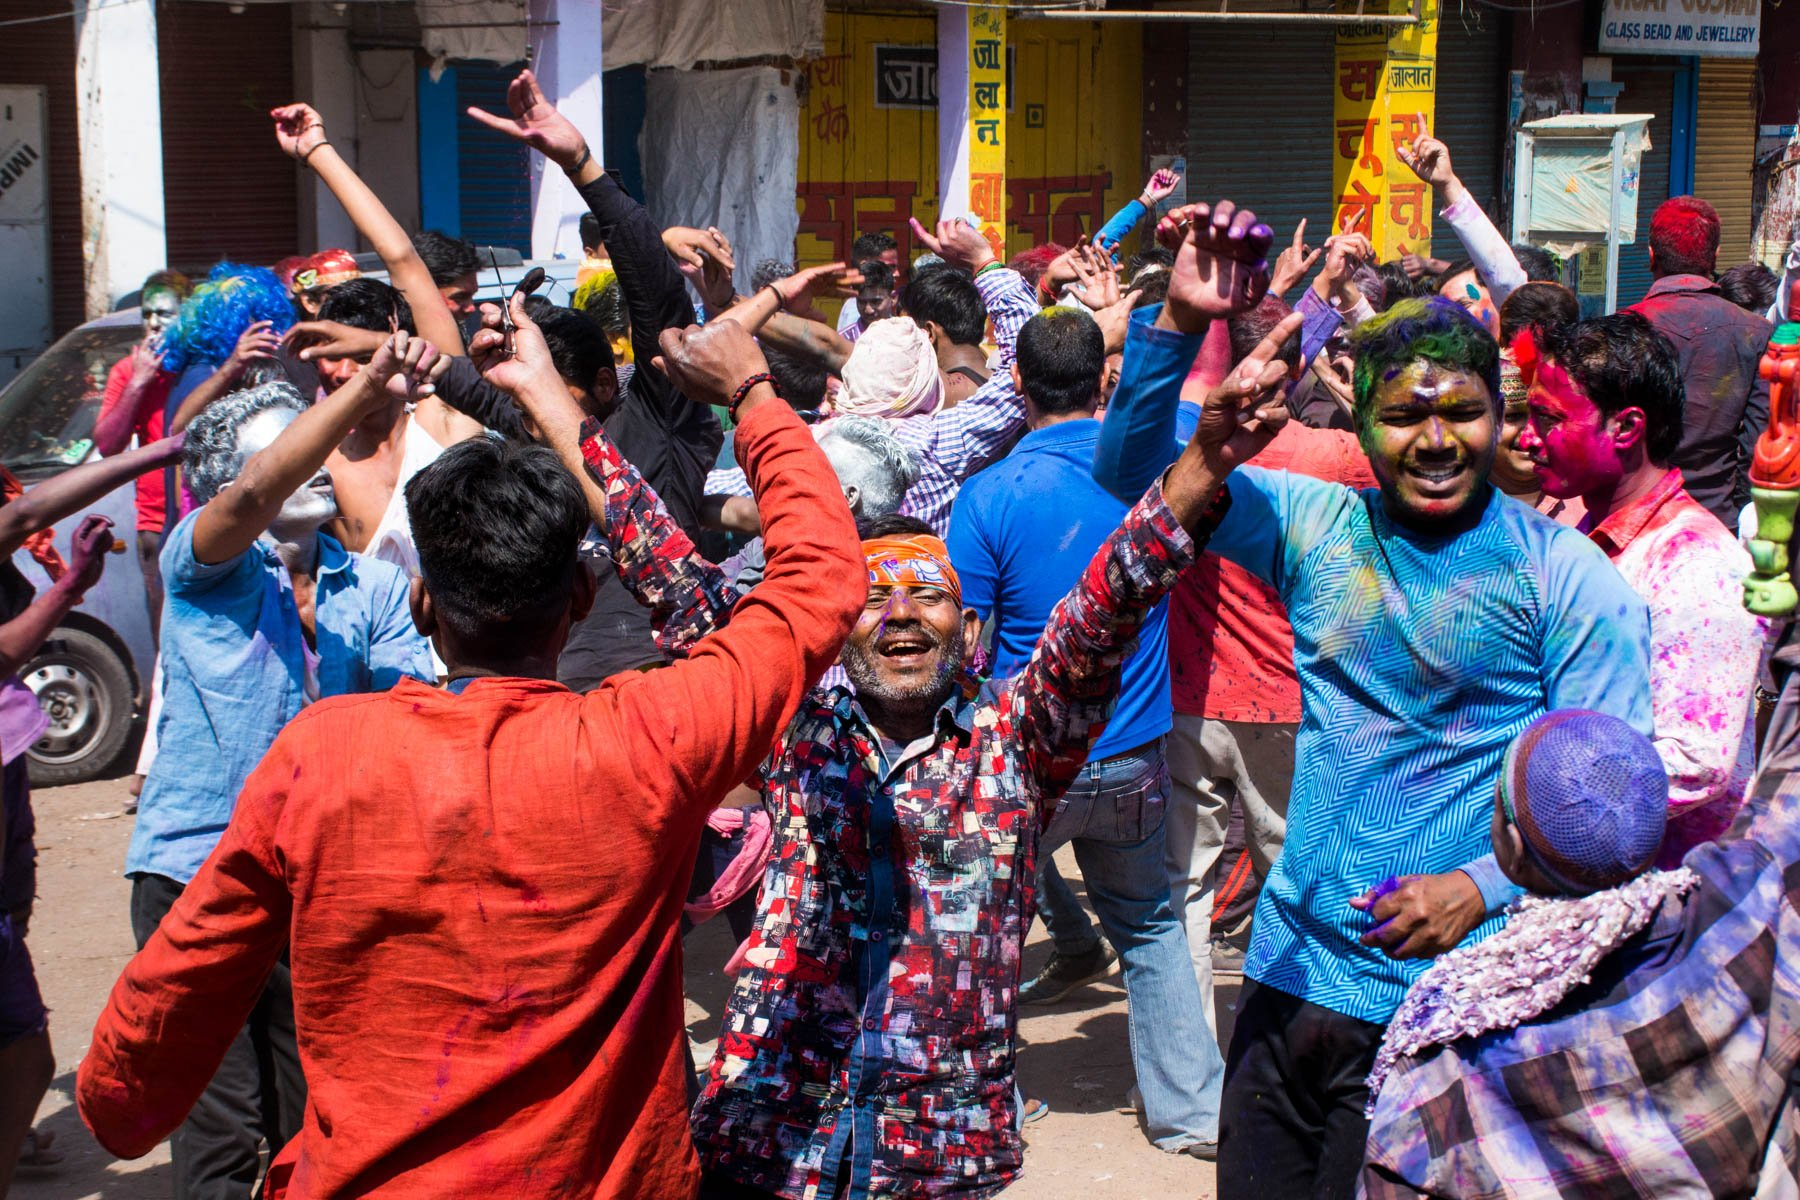 Celebrating Holi as a woman in Varanasi, India - A mob of dancing men - Lost With Purpose